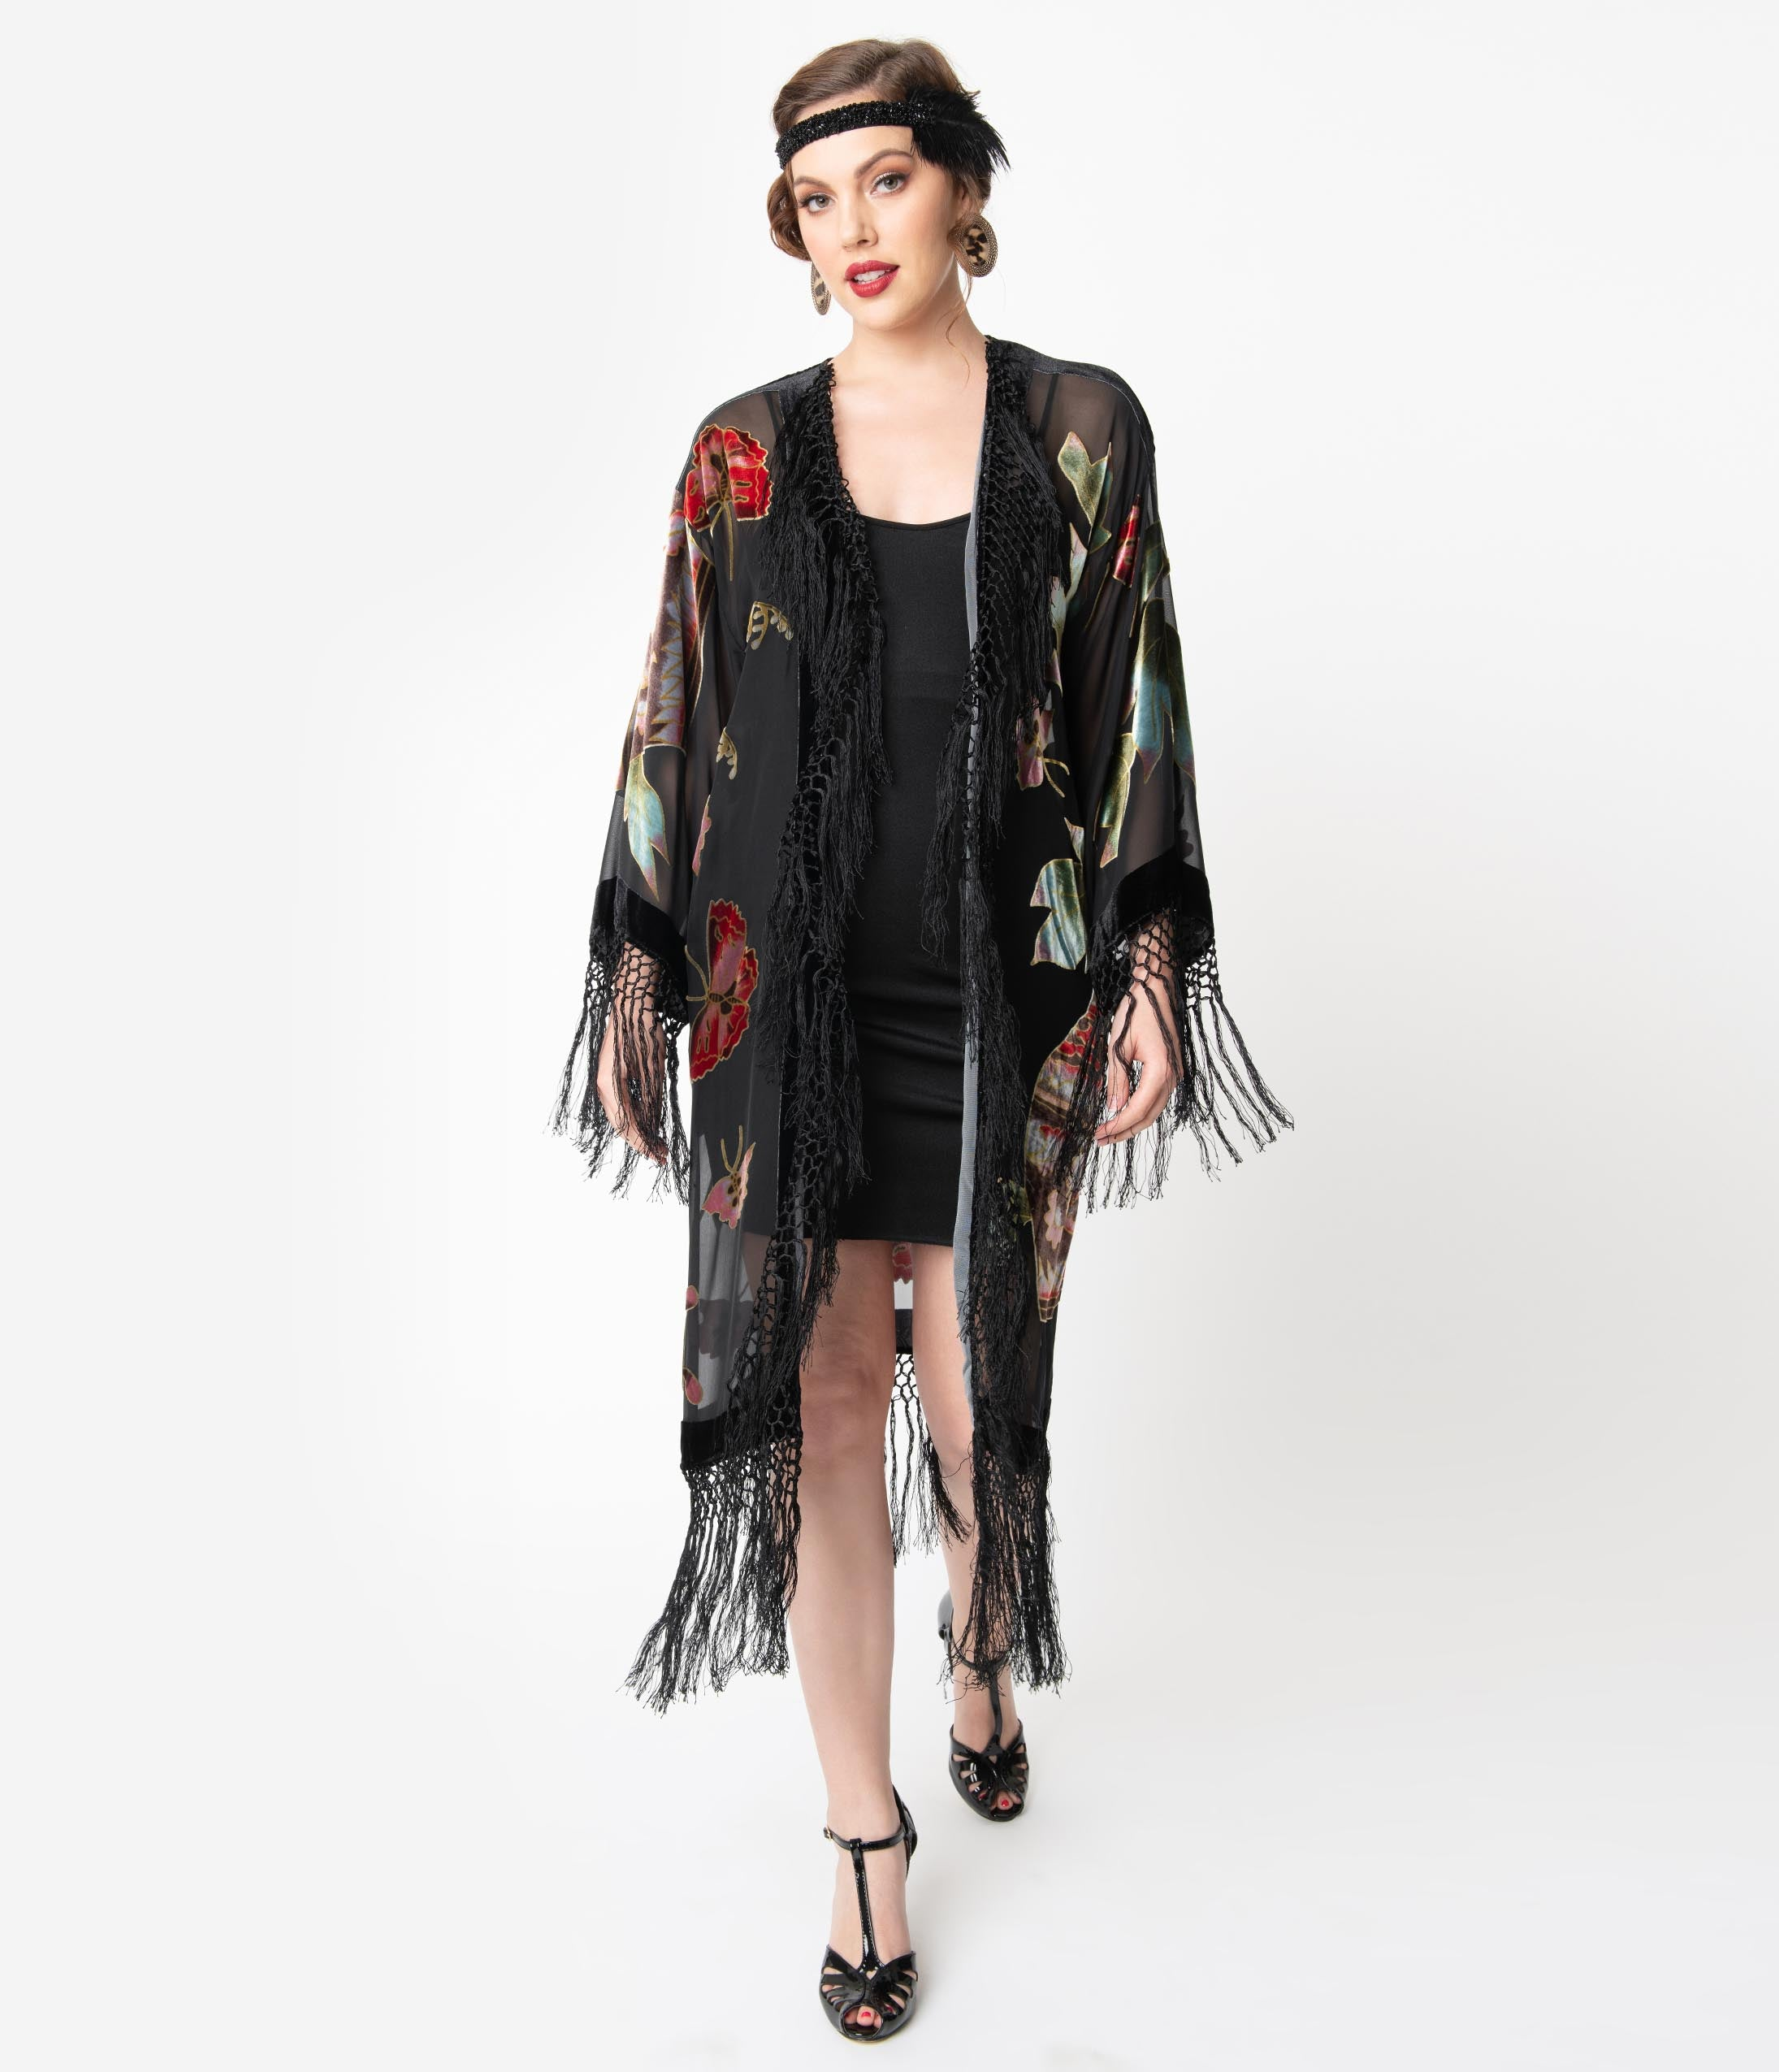 Vintage Coats & Jackets | Retro Coats and Jackets Vintage Style Black Floral Devore Velvet Fringe Flapper Coat $194.00 AT vintagedancer.com